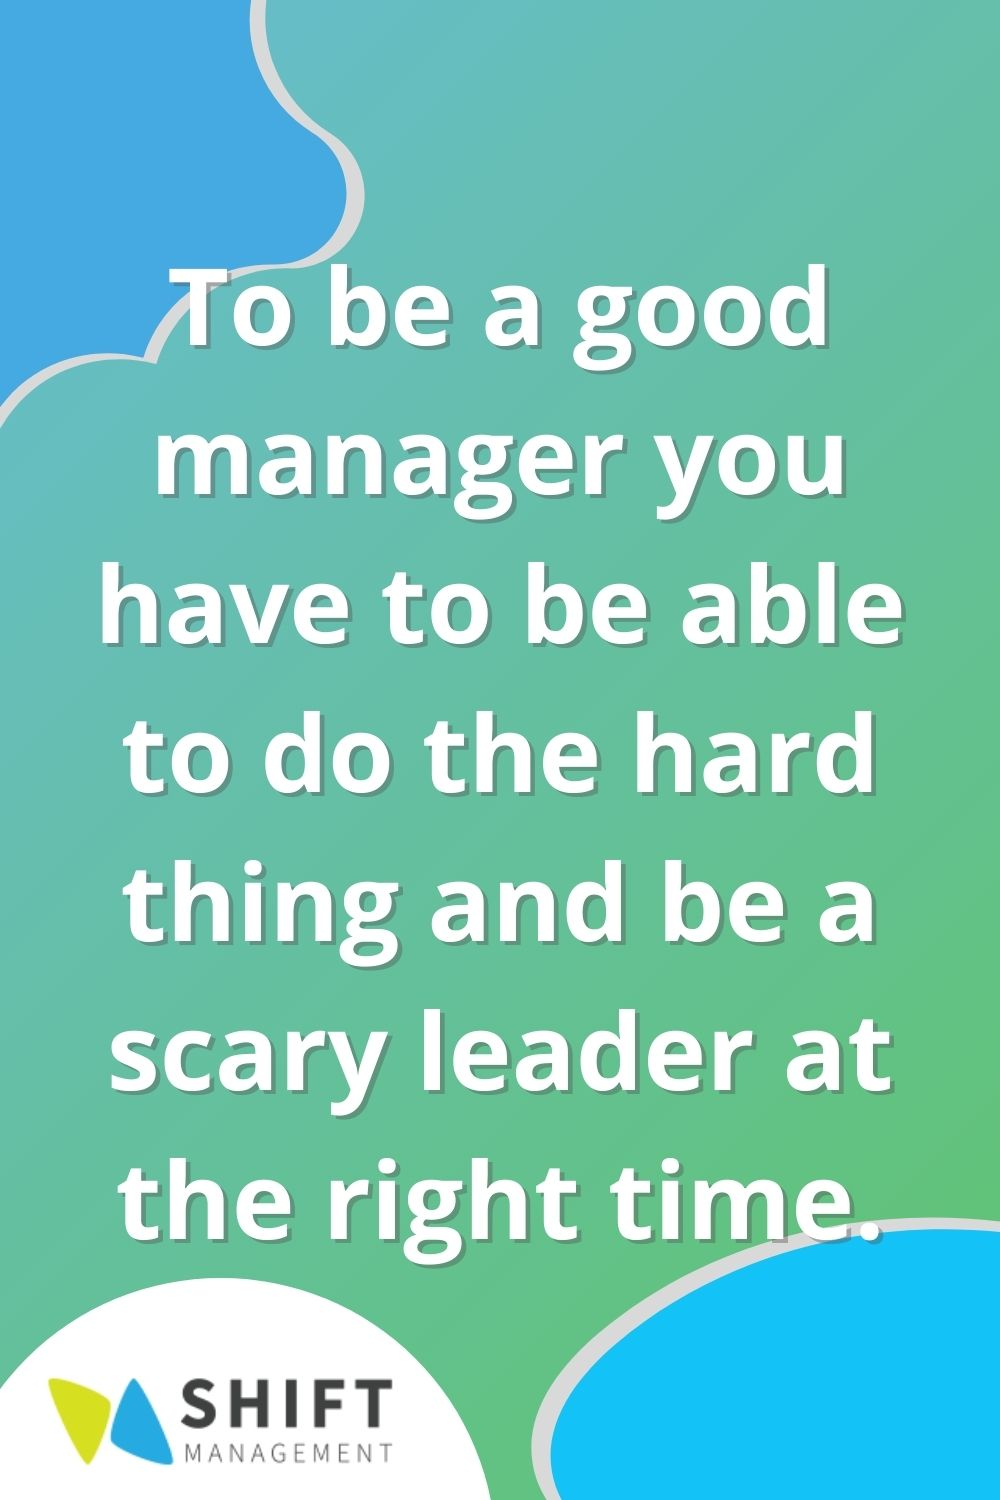 To be a good manager you have to be able to do the hard thing and be a scary leader at the right time